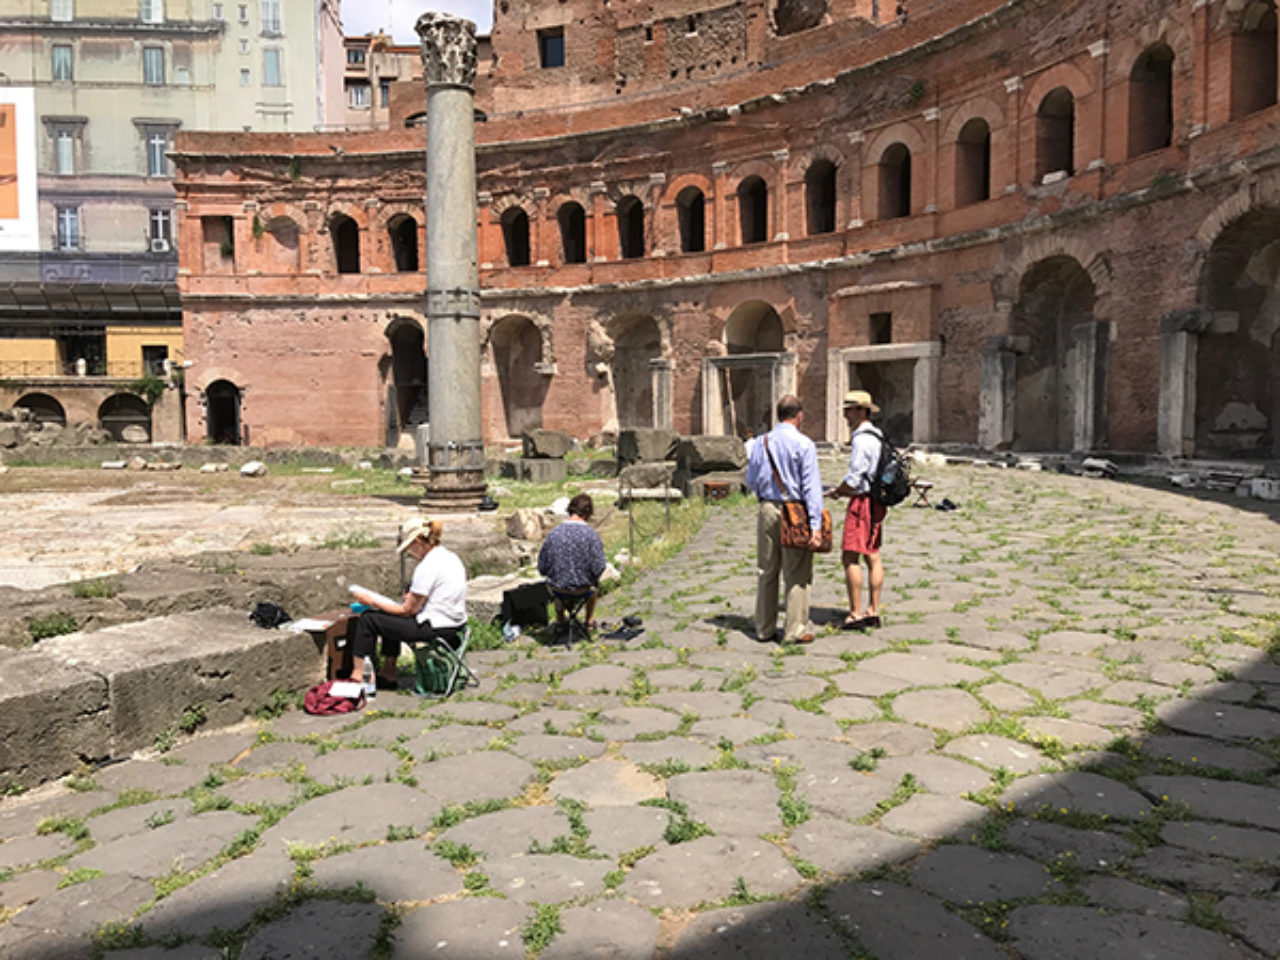 Tour participants sketch on location at Trajan's Market